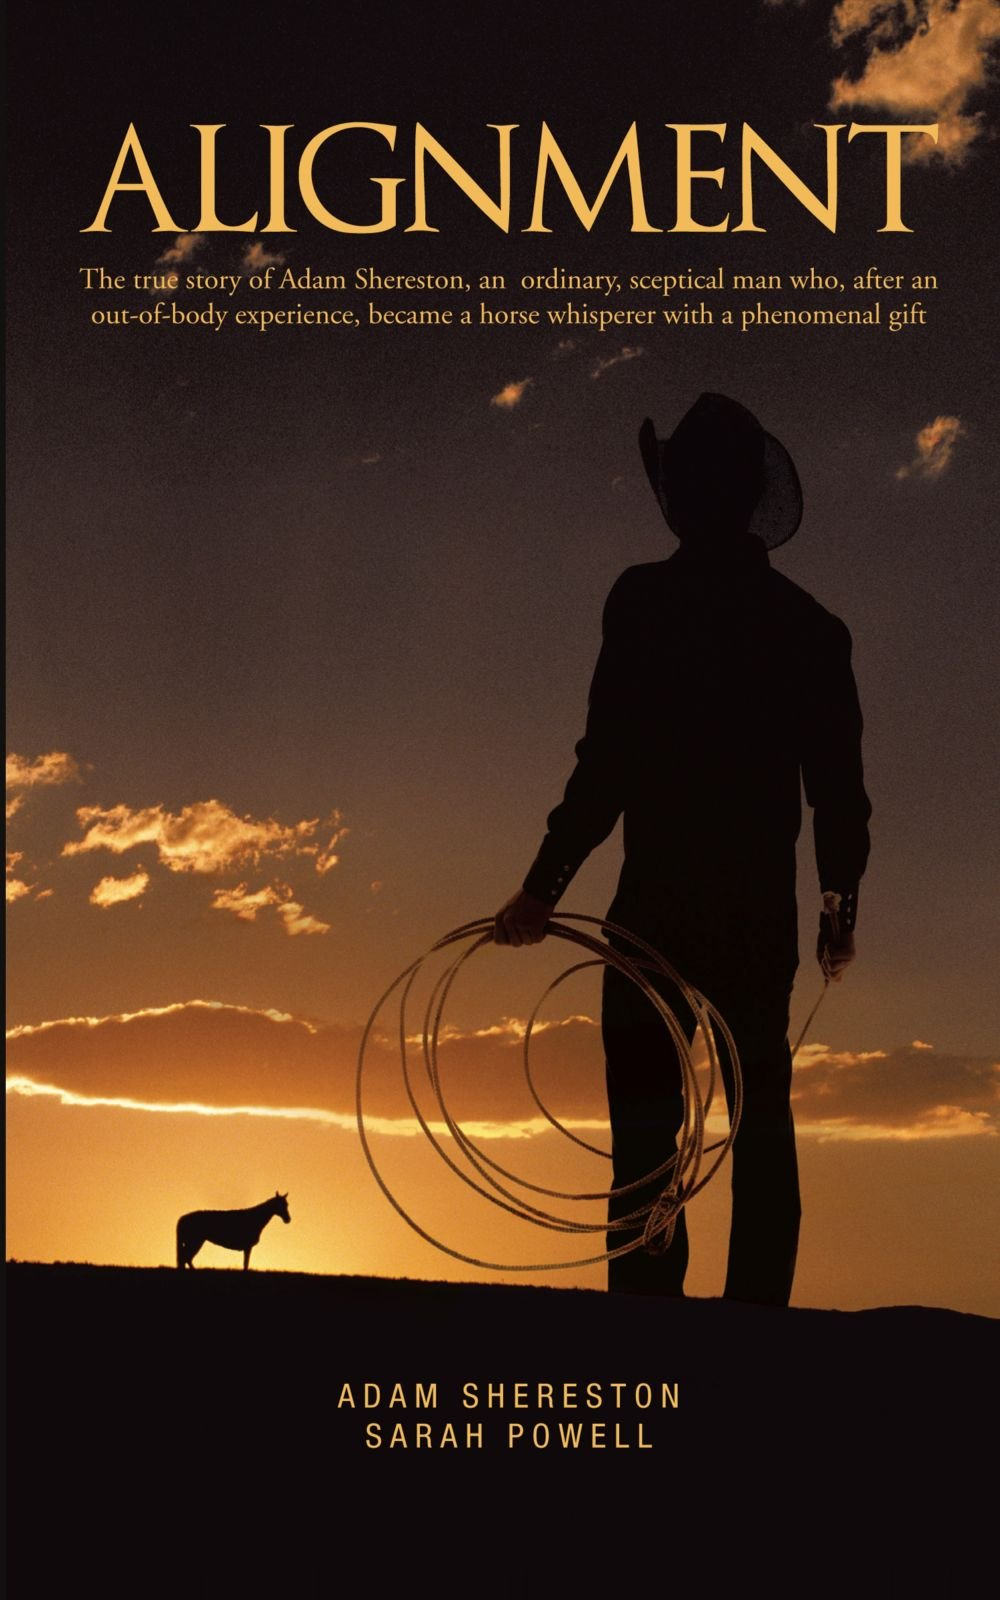 Download Alignment: The True Story of Adam Shereston, an Ordinary, Sceptical Man Who, After an Out-of-Body Experience, Became a Horse Whisperer with a Phenomenal Gift ebook